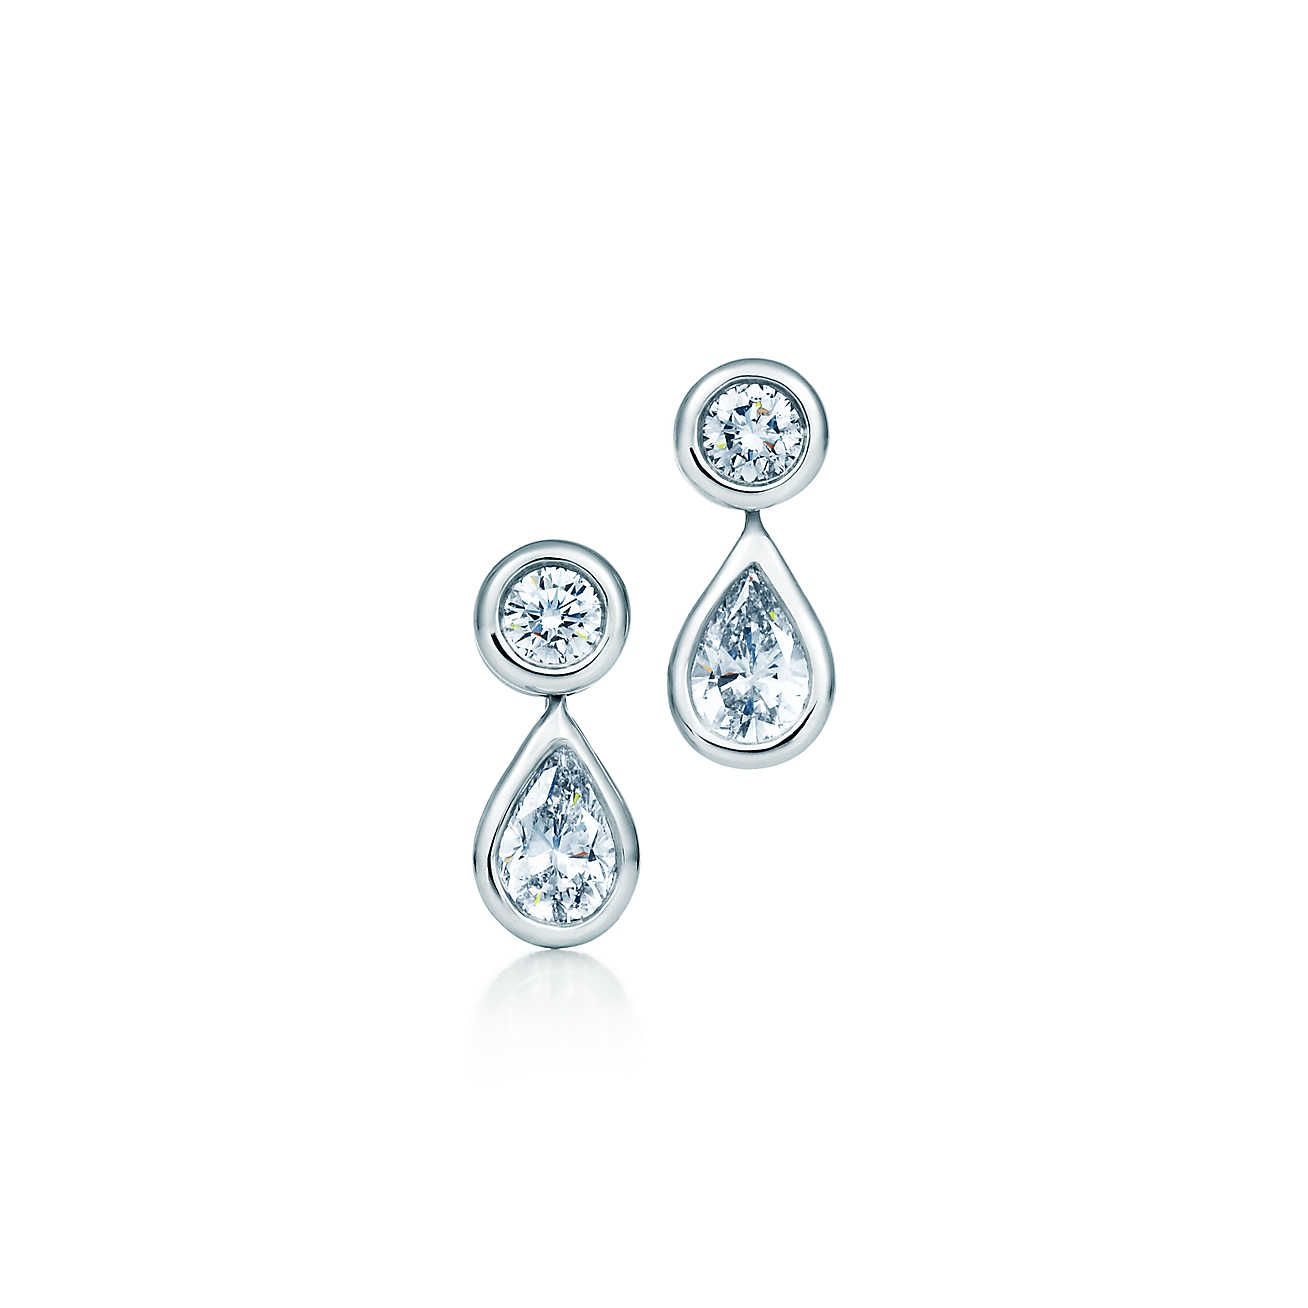 Elsa Peretti Diamonds By The Yard Earrings In Platinum